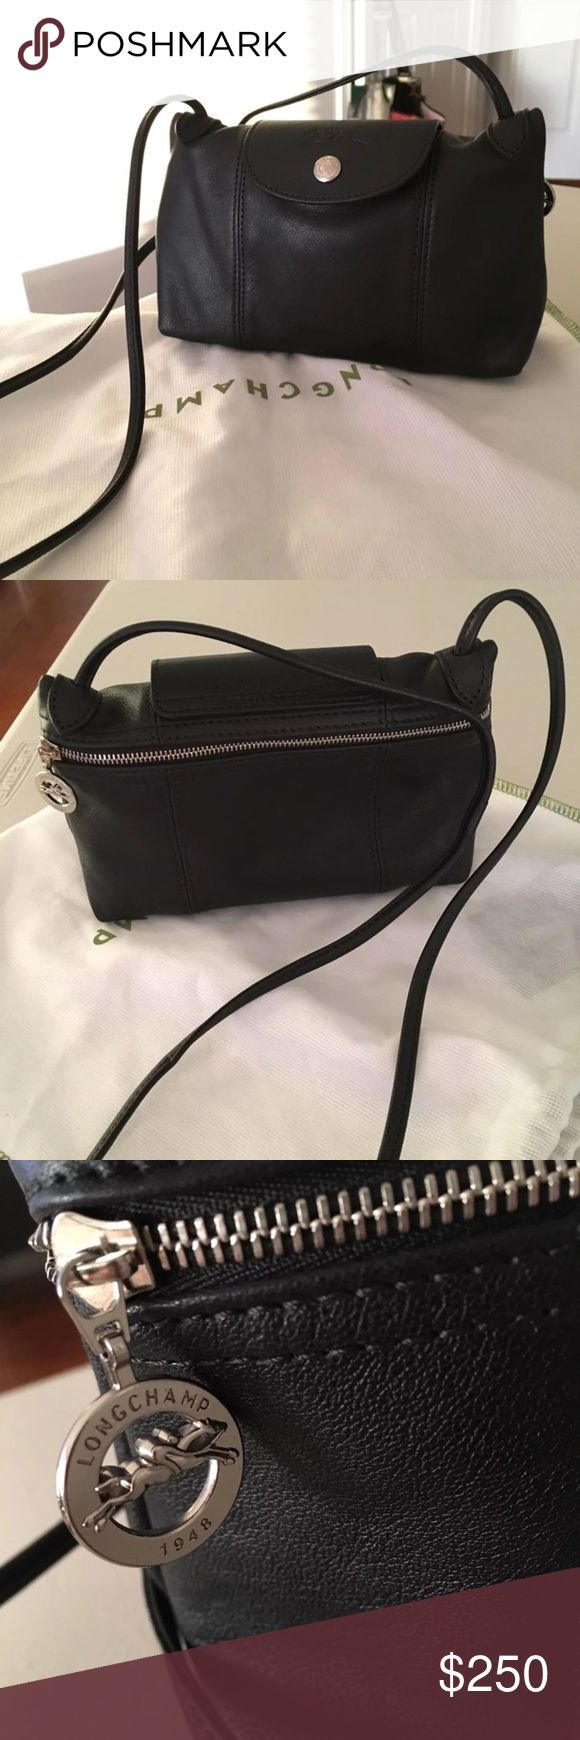 """Longchamp cuir crossbody 8.75"""" x 5.5"""" x 2.85"""". Color: Black. Crossbody mini bag from Longchamp Le Pliage Cuir collection. Small exterior front pocket with snap closure. Final sale. Longchamp Bags Mini Bags"""